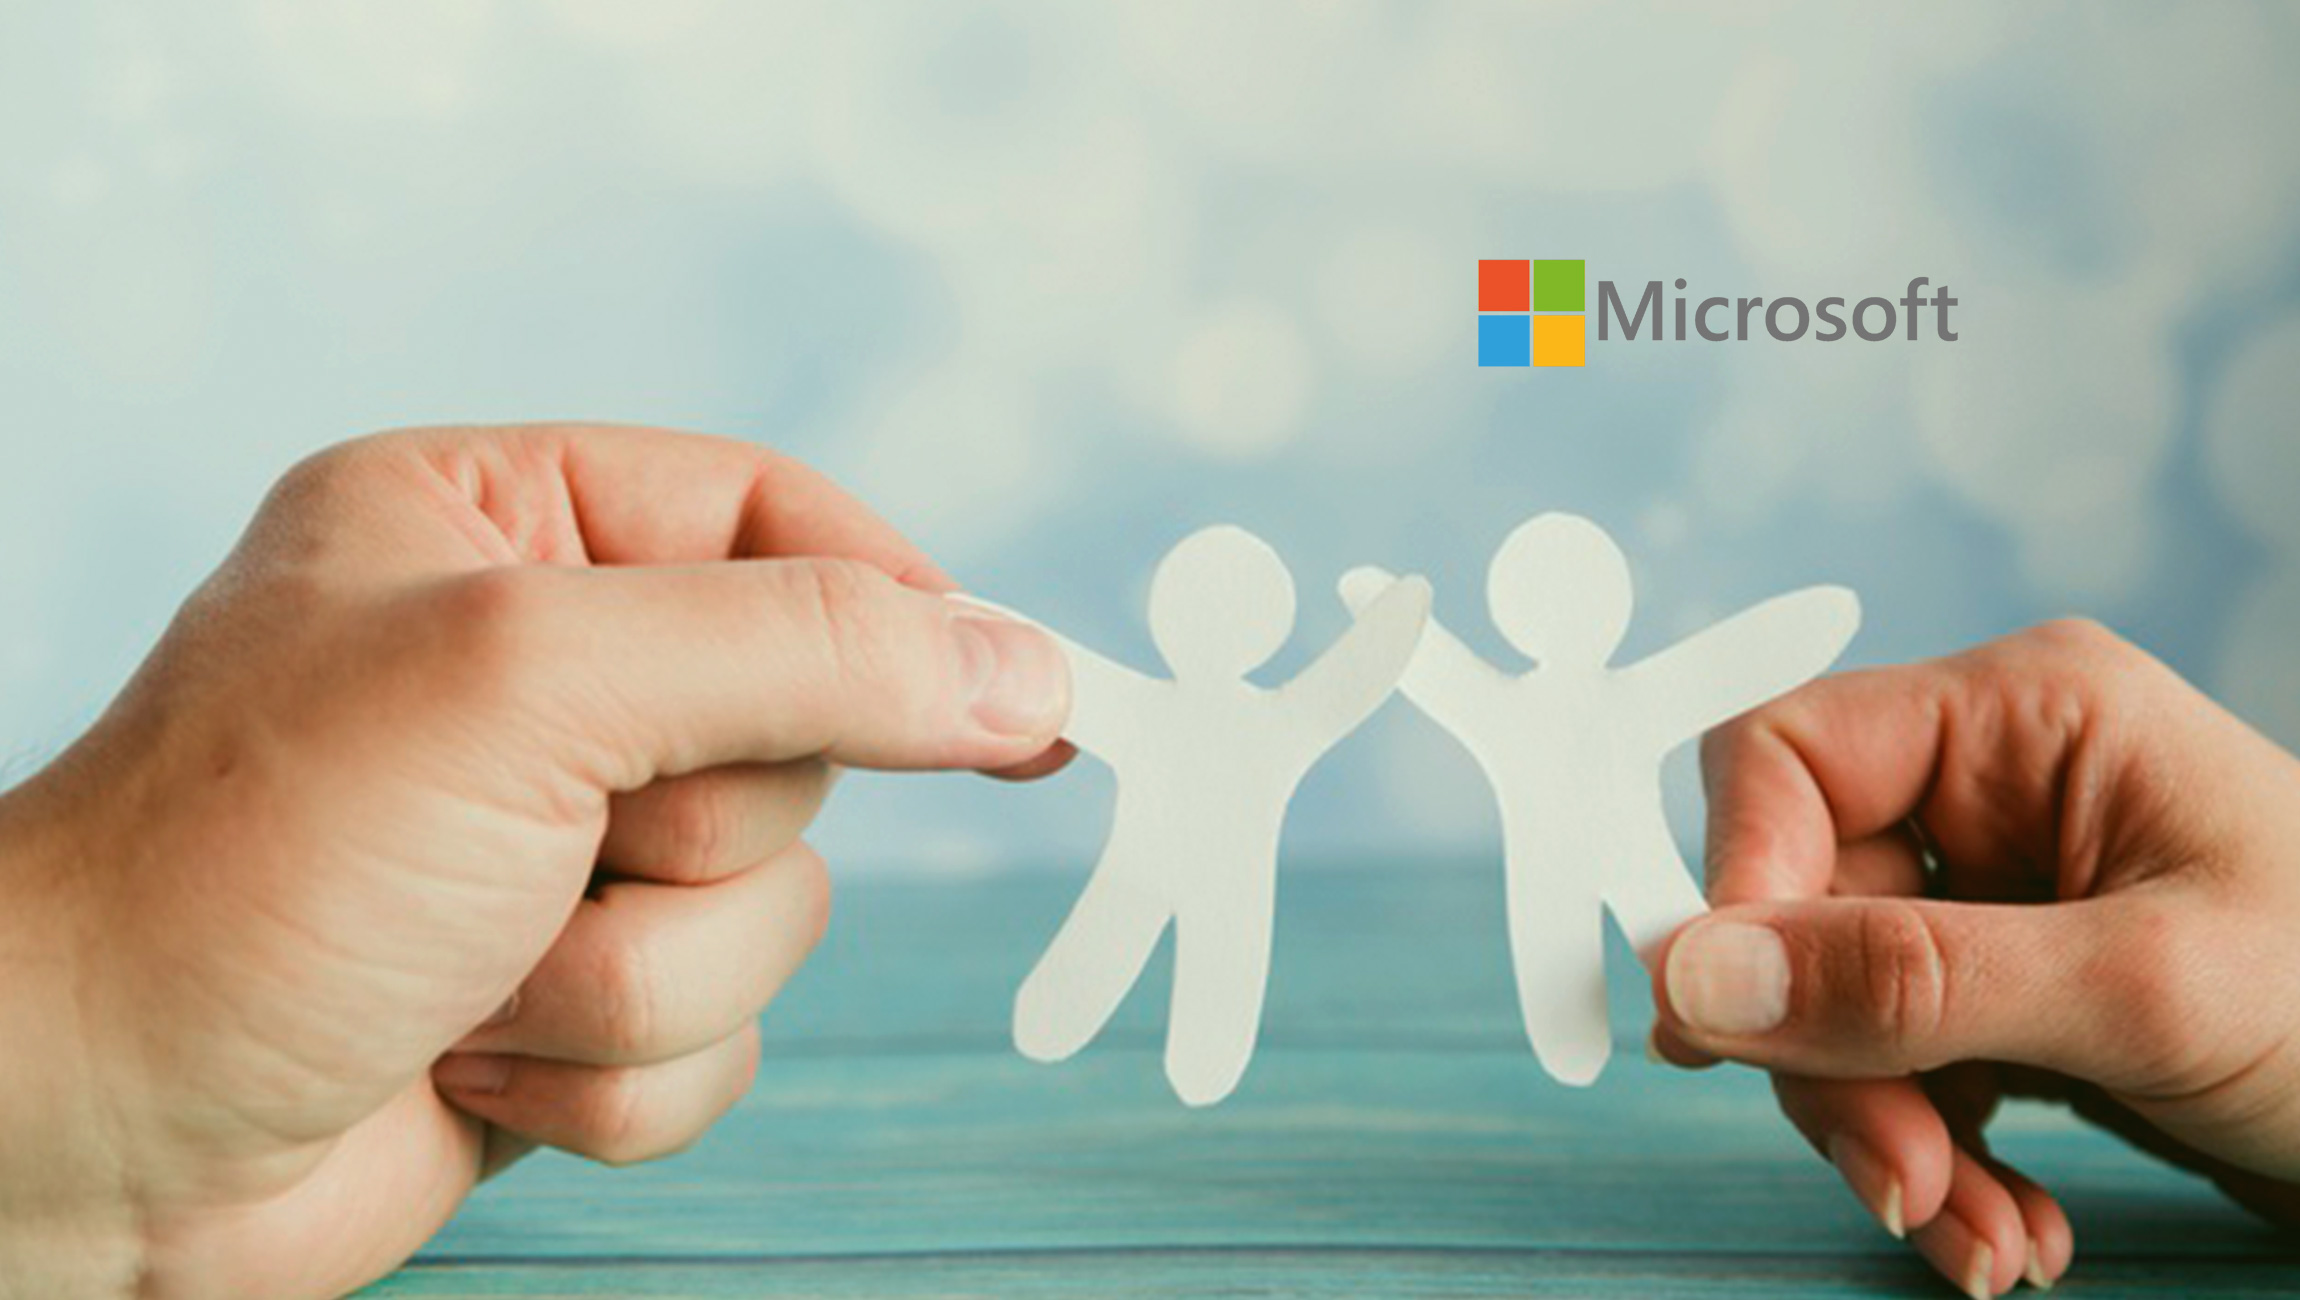 Microsoft Announces Investments to Broaden Opportunities for Partners